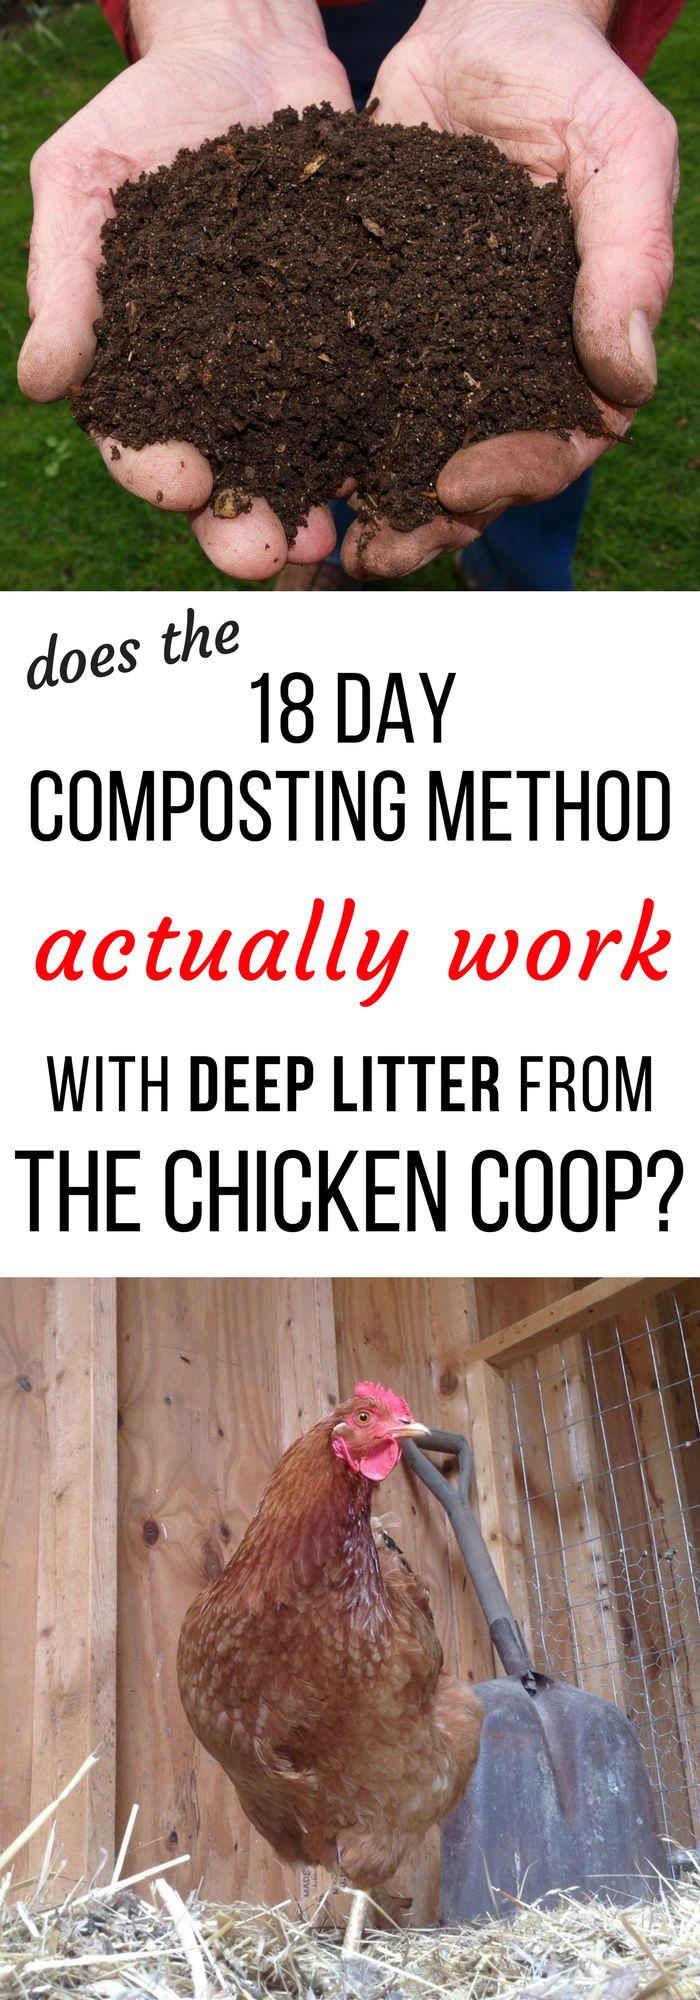 You've heard of the 18 day composting method - but does it ACTUALLY work with deep little cleaned out of the chicken coop? Here's what I found out when I tried it...